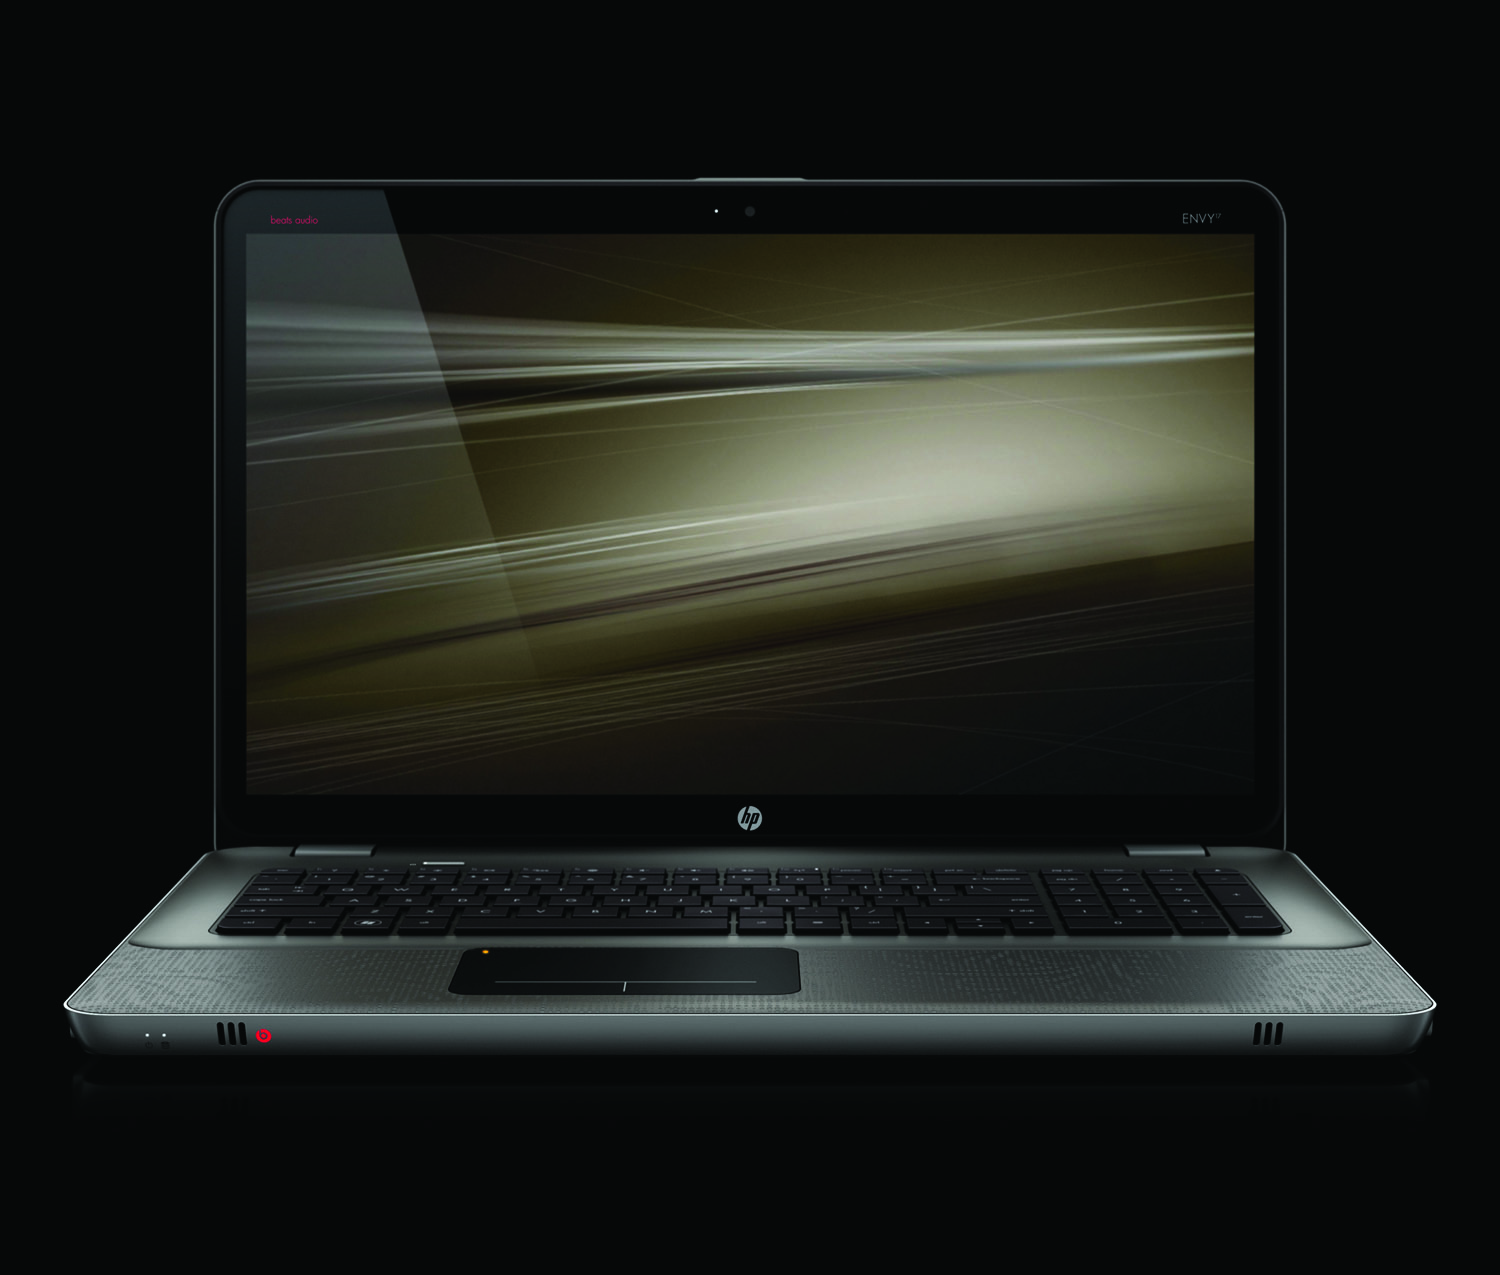 HP Envy 17, front open on black